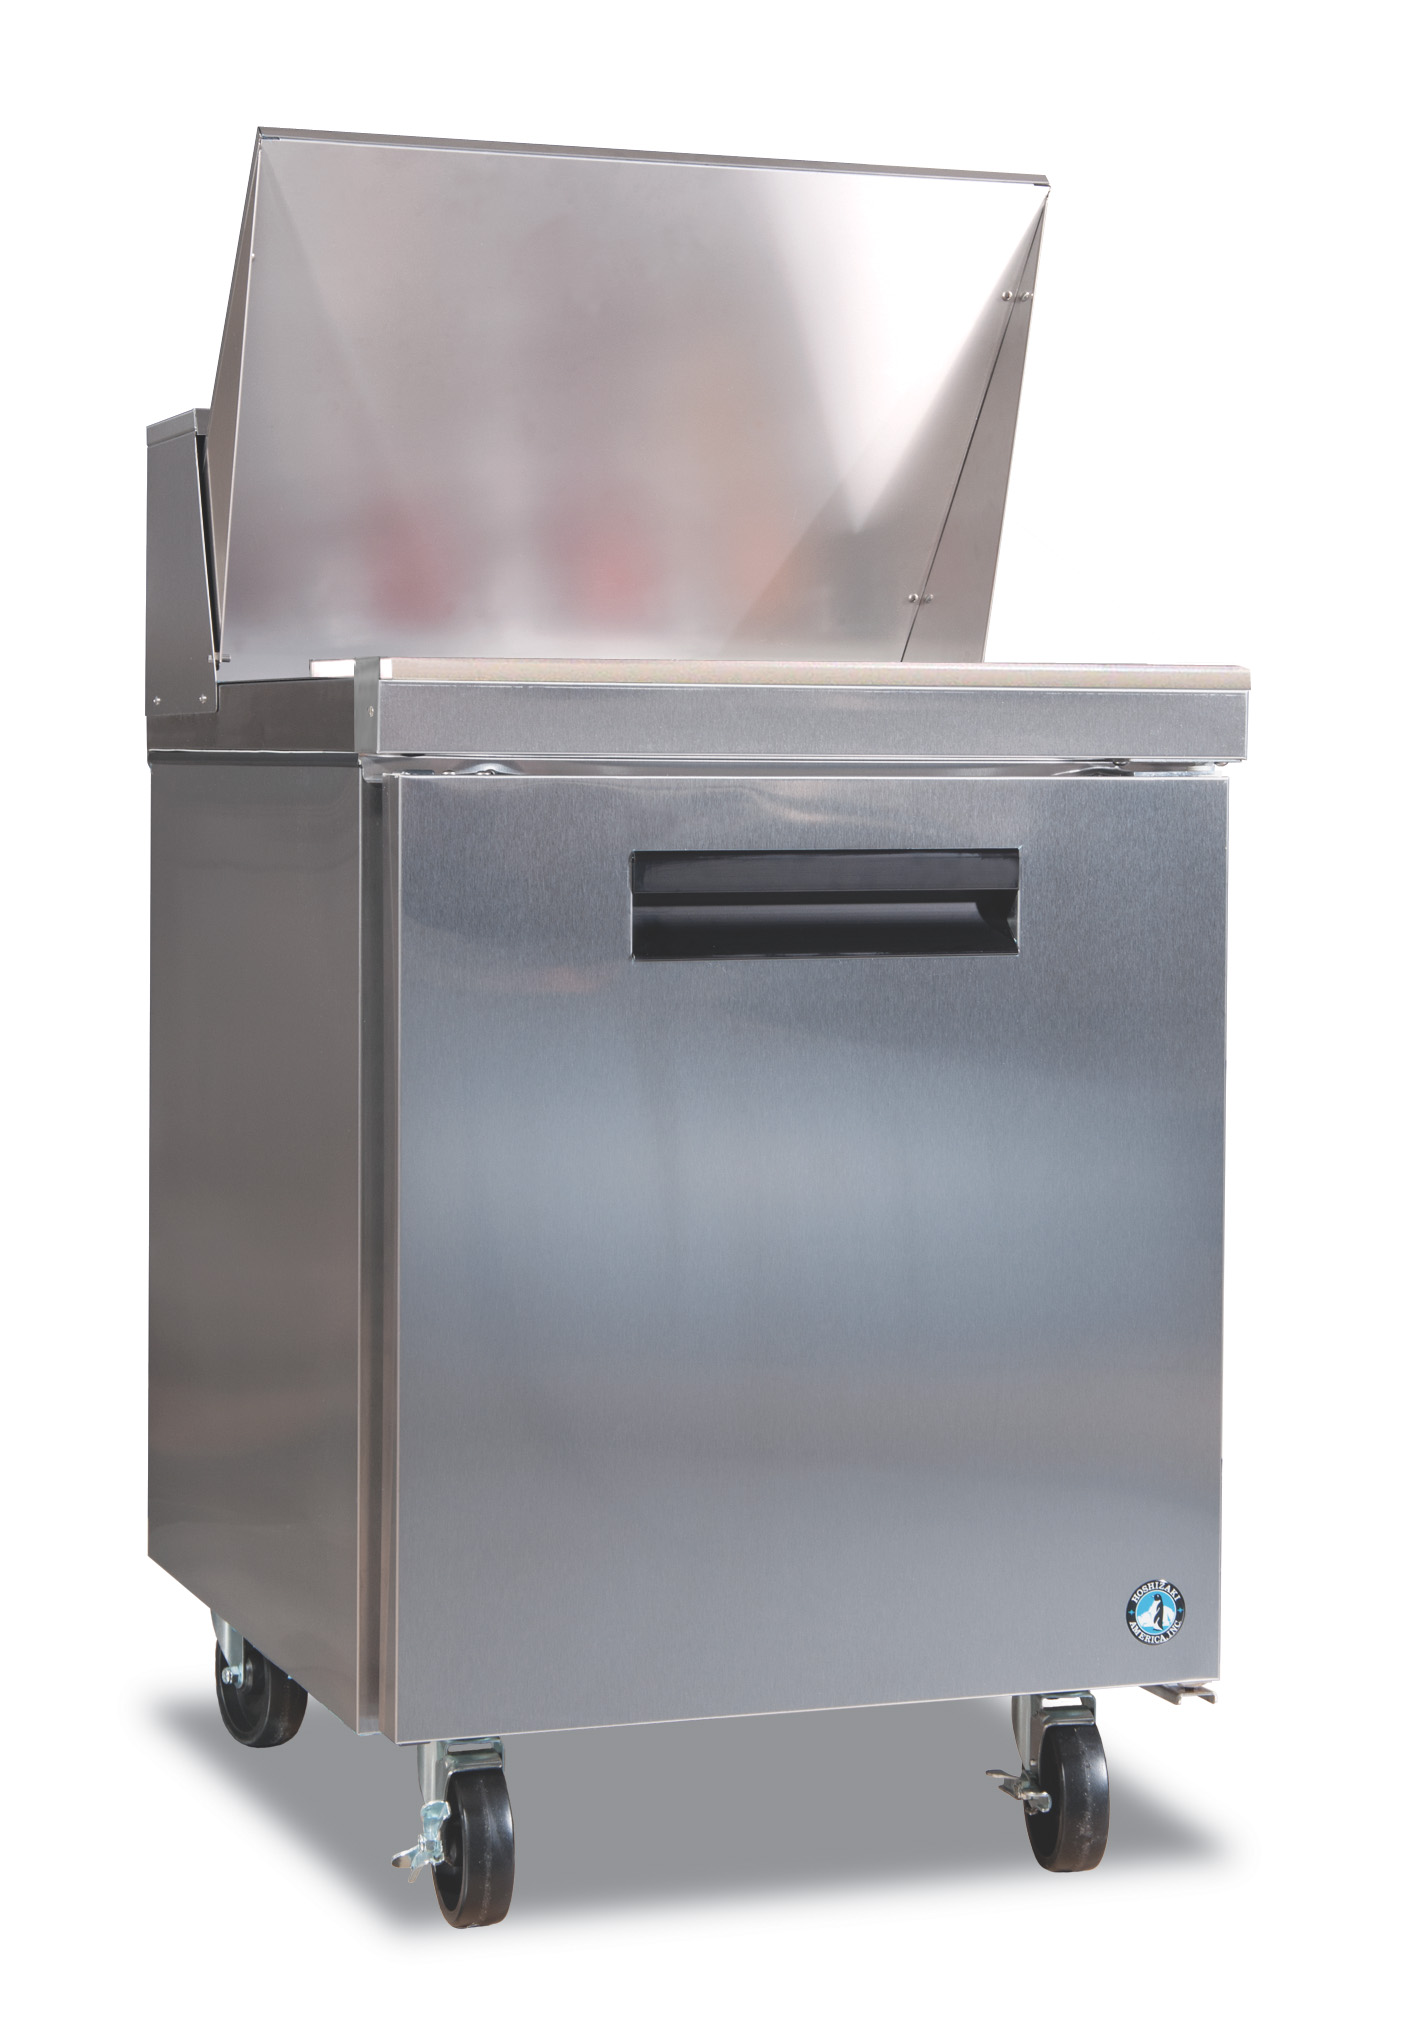 Hoshizaki CRMR Refrigerator Single Section Sandwich Top Prep - Commercial prep table refrigerator